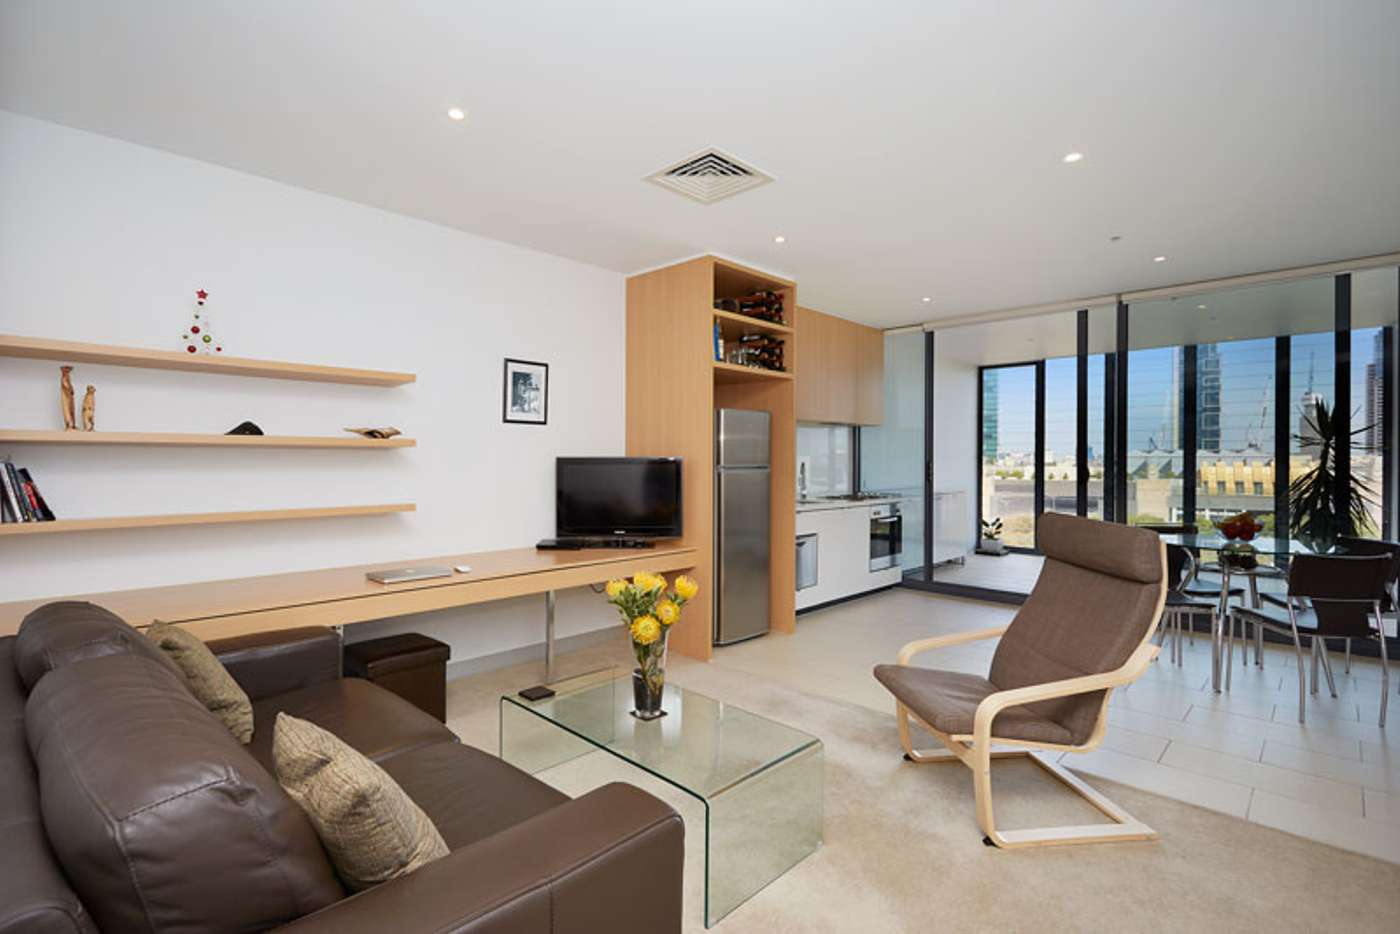 Main view of Homely apartment listing, 819/555 Flinders Street, Melbourne VIC 3000